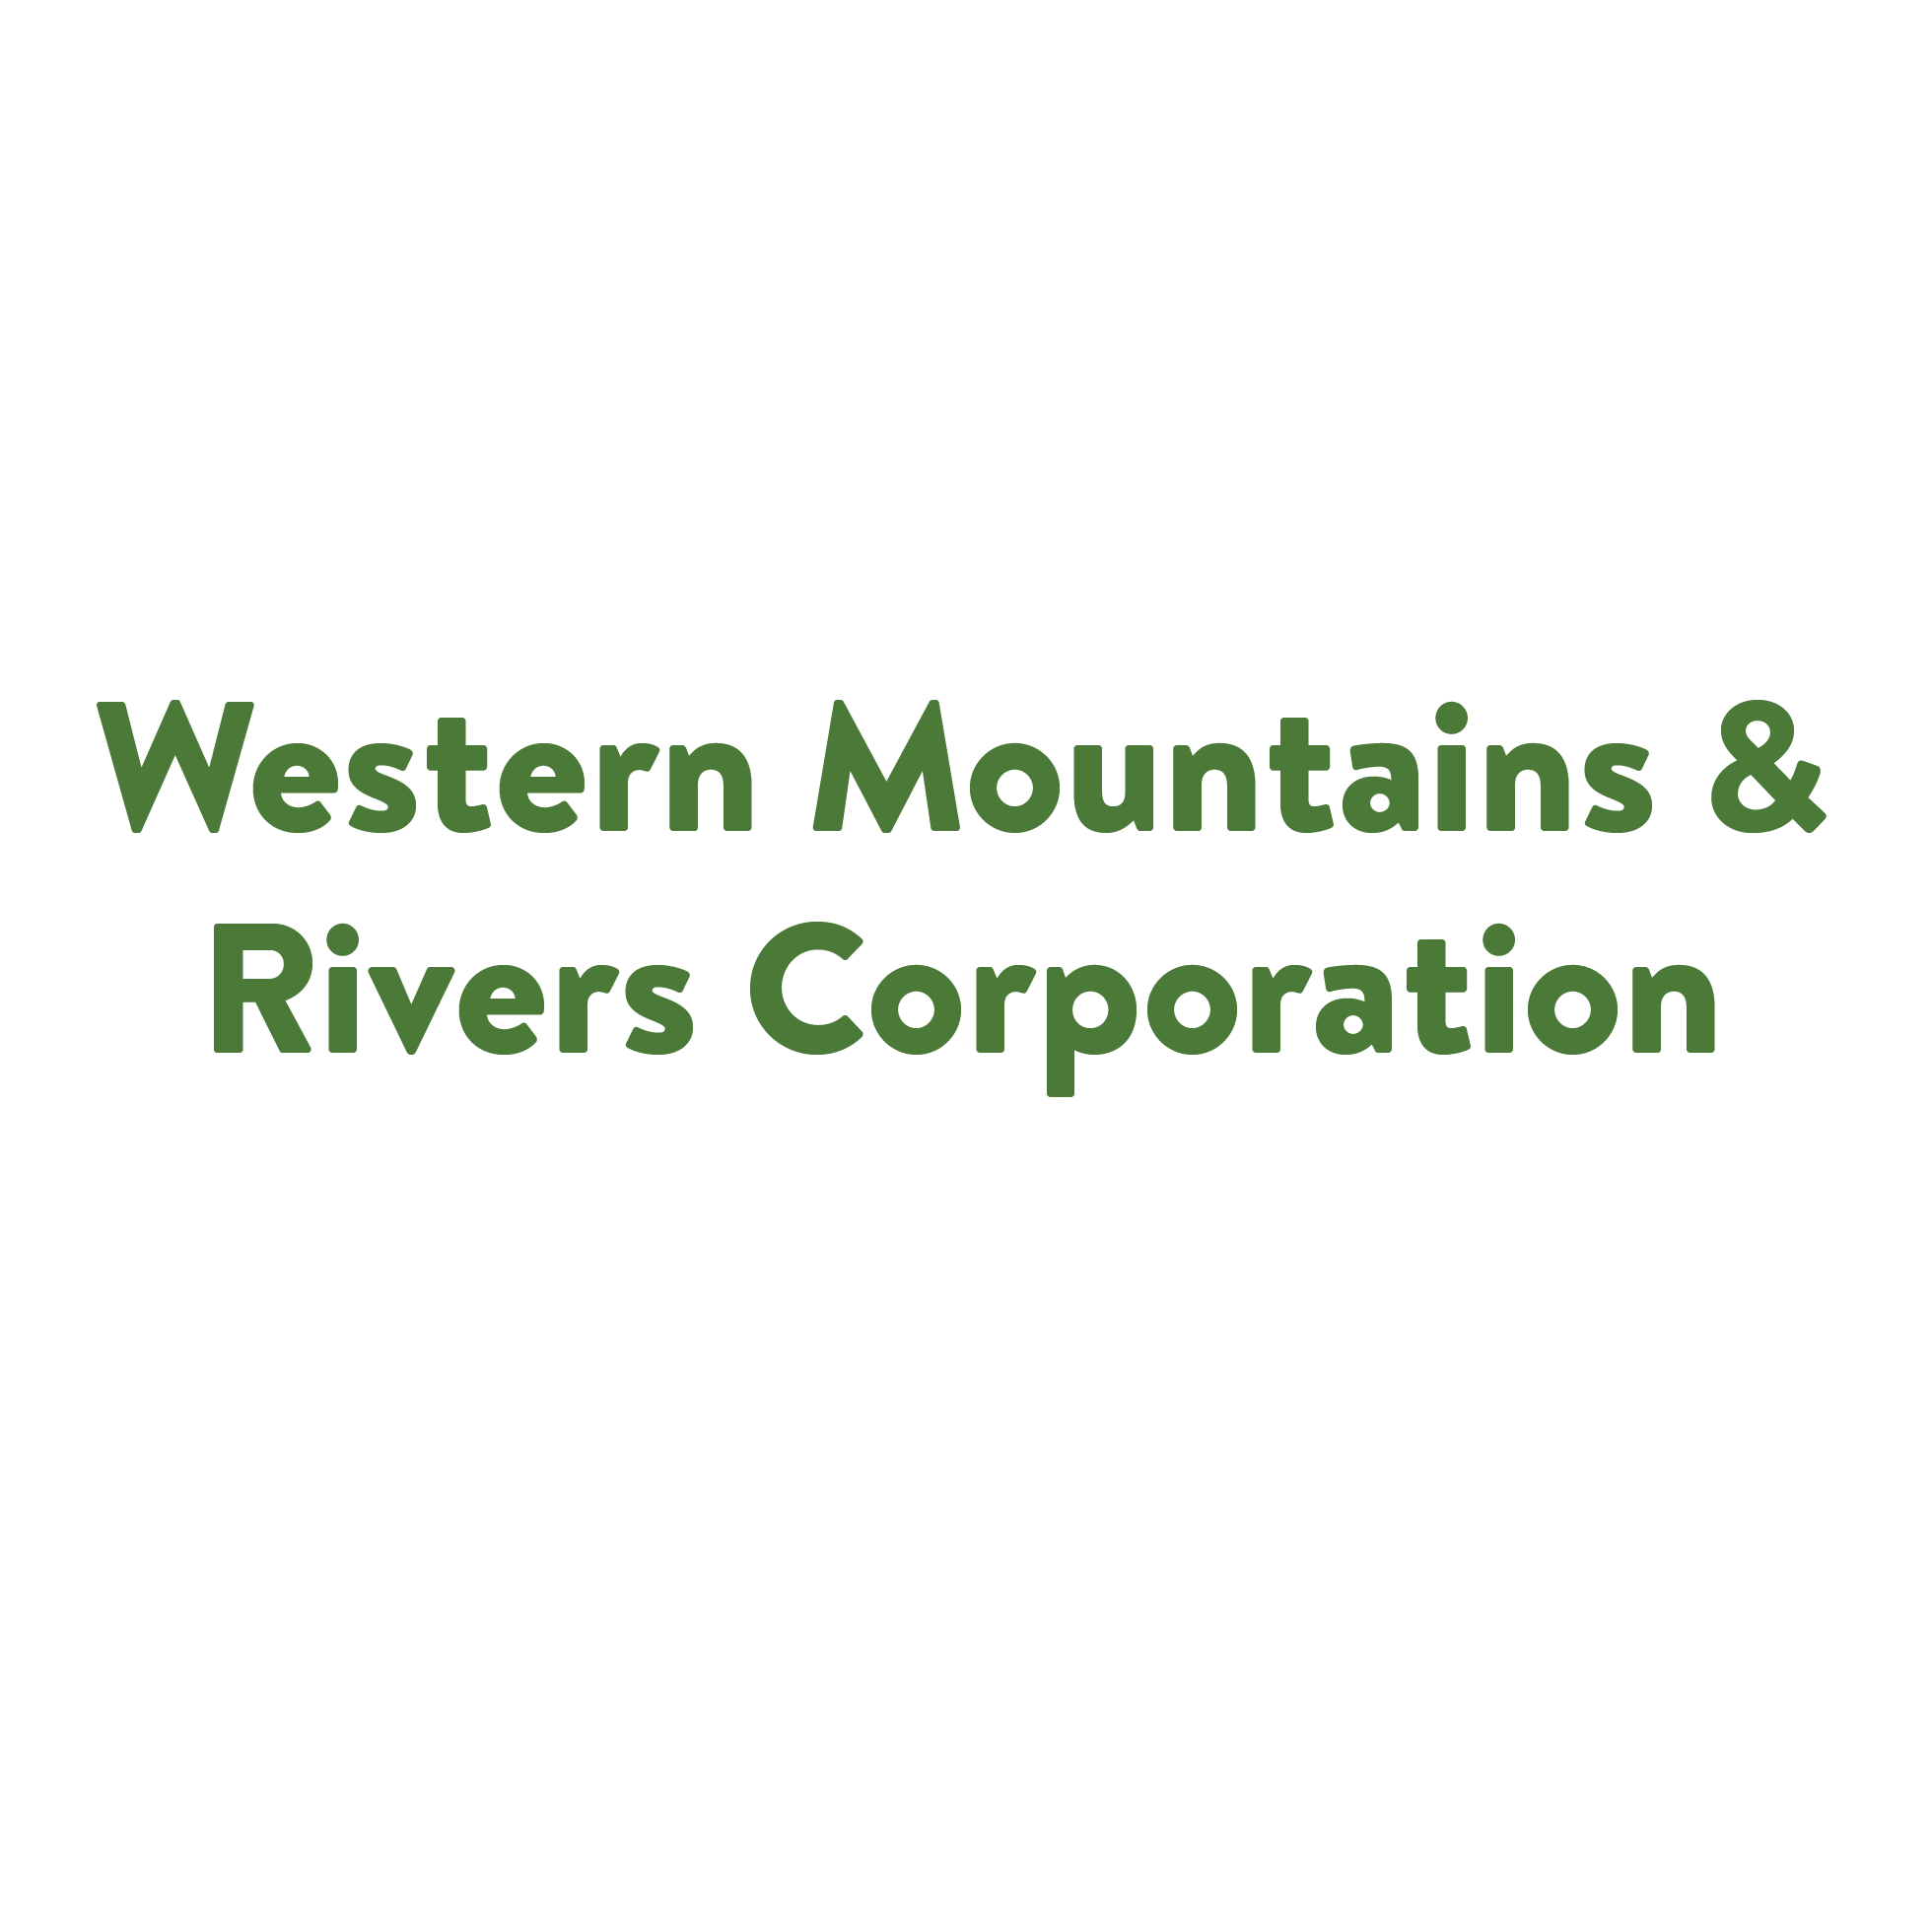 Western Mountains & Rivers Corporation